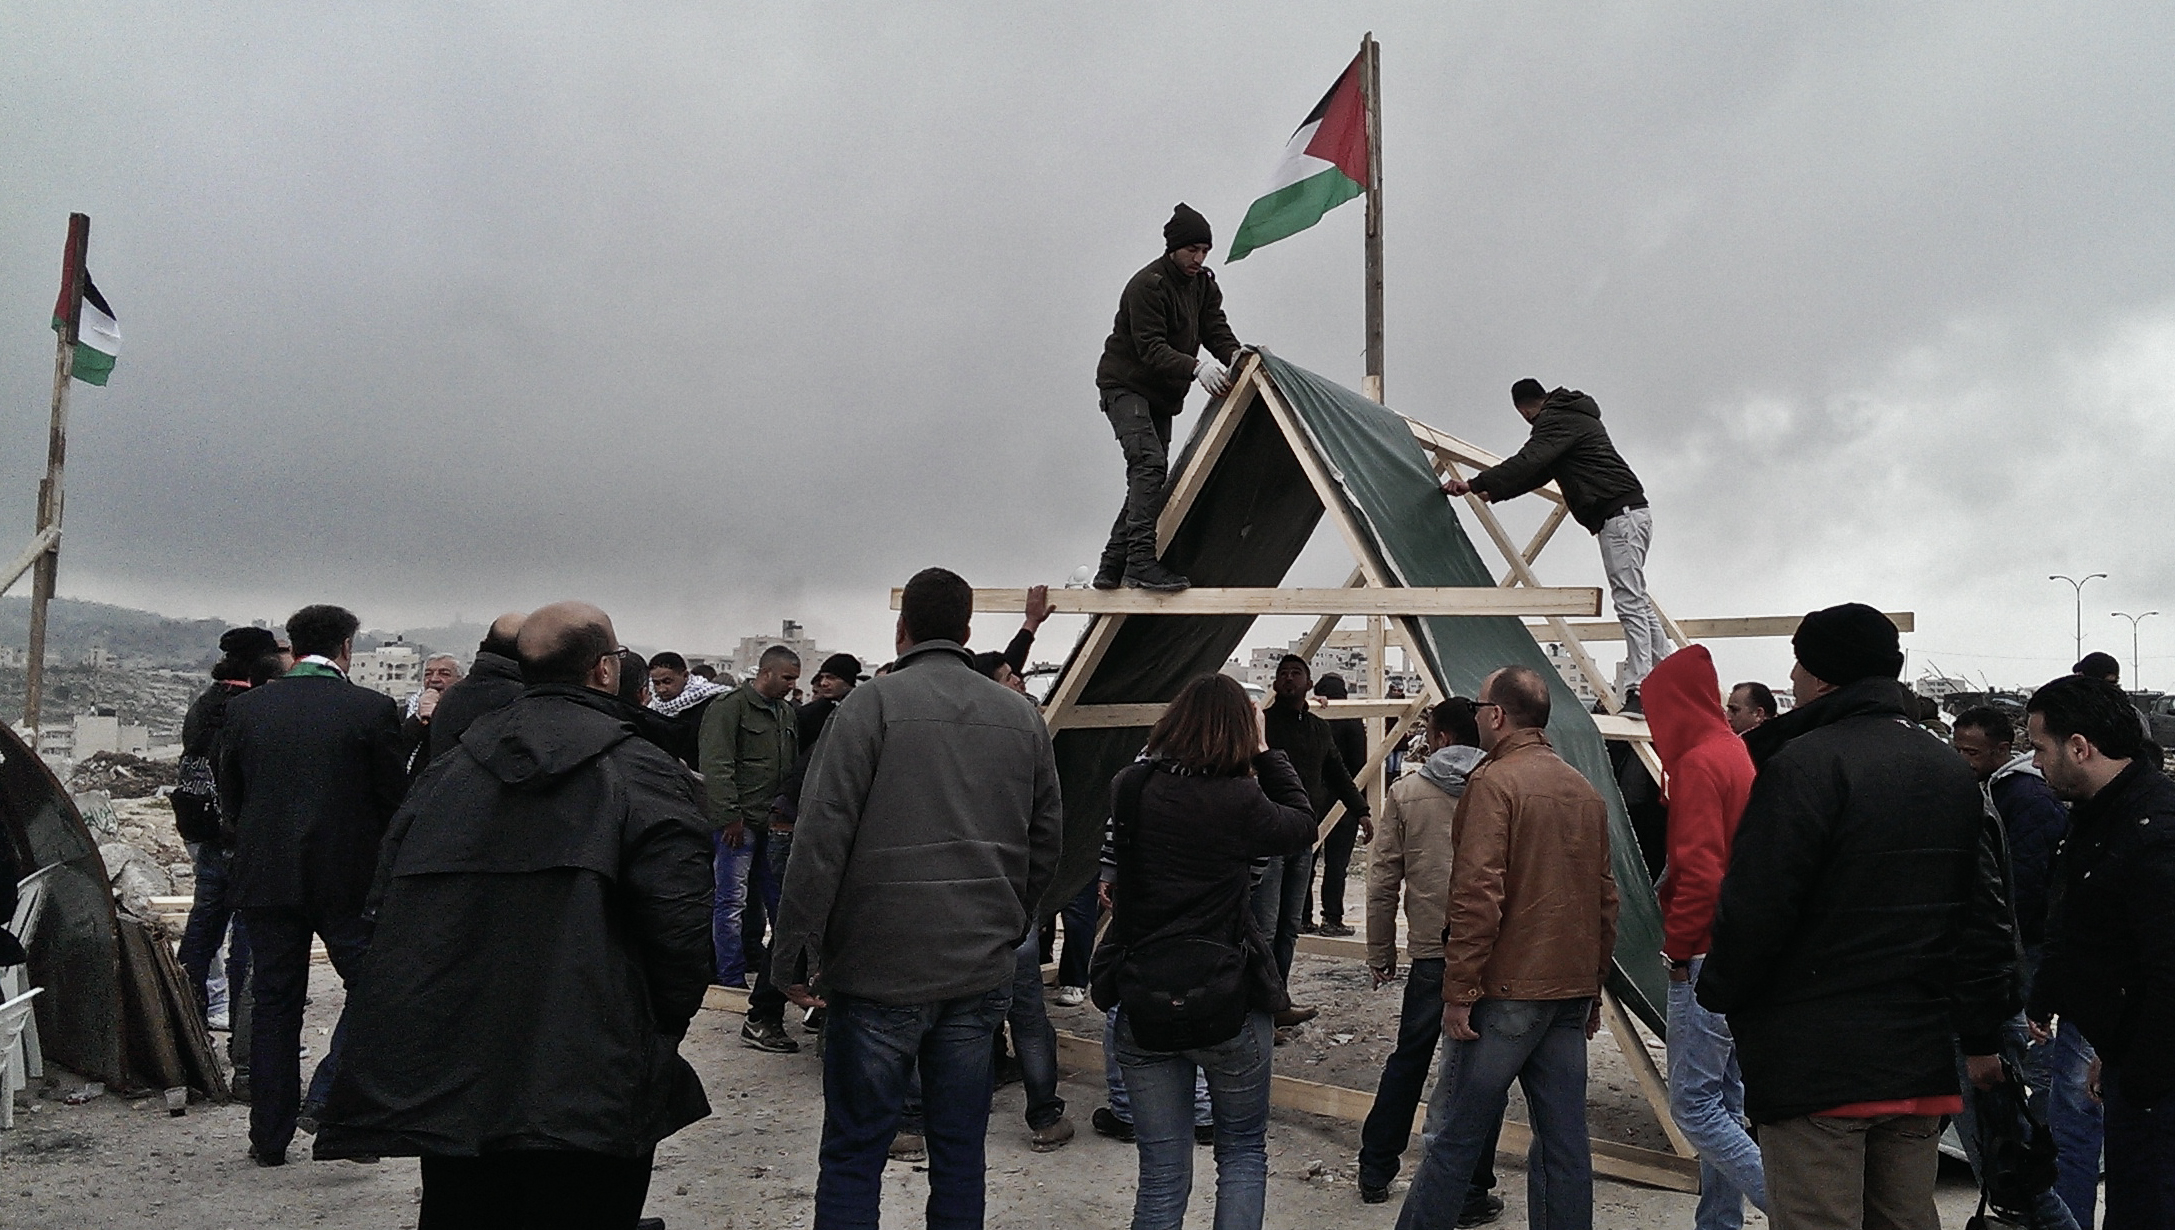 Residents of Abu Dis erect a tent in 'Bawabet al-Quds' to signal that they want to decide who lives and builds in the village's land. Feb 16, 2015 ©Lena Odgaard